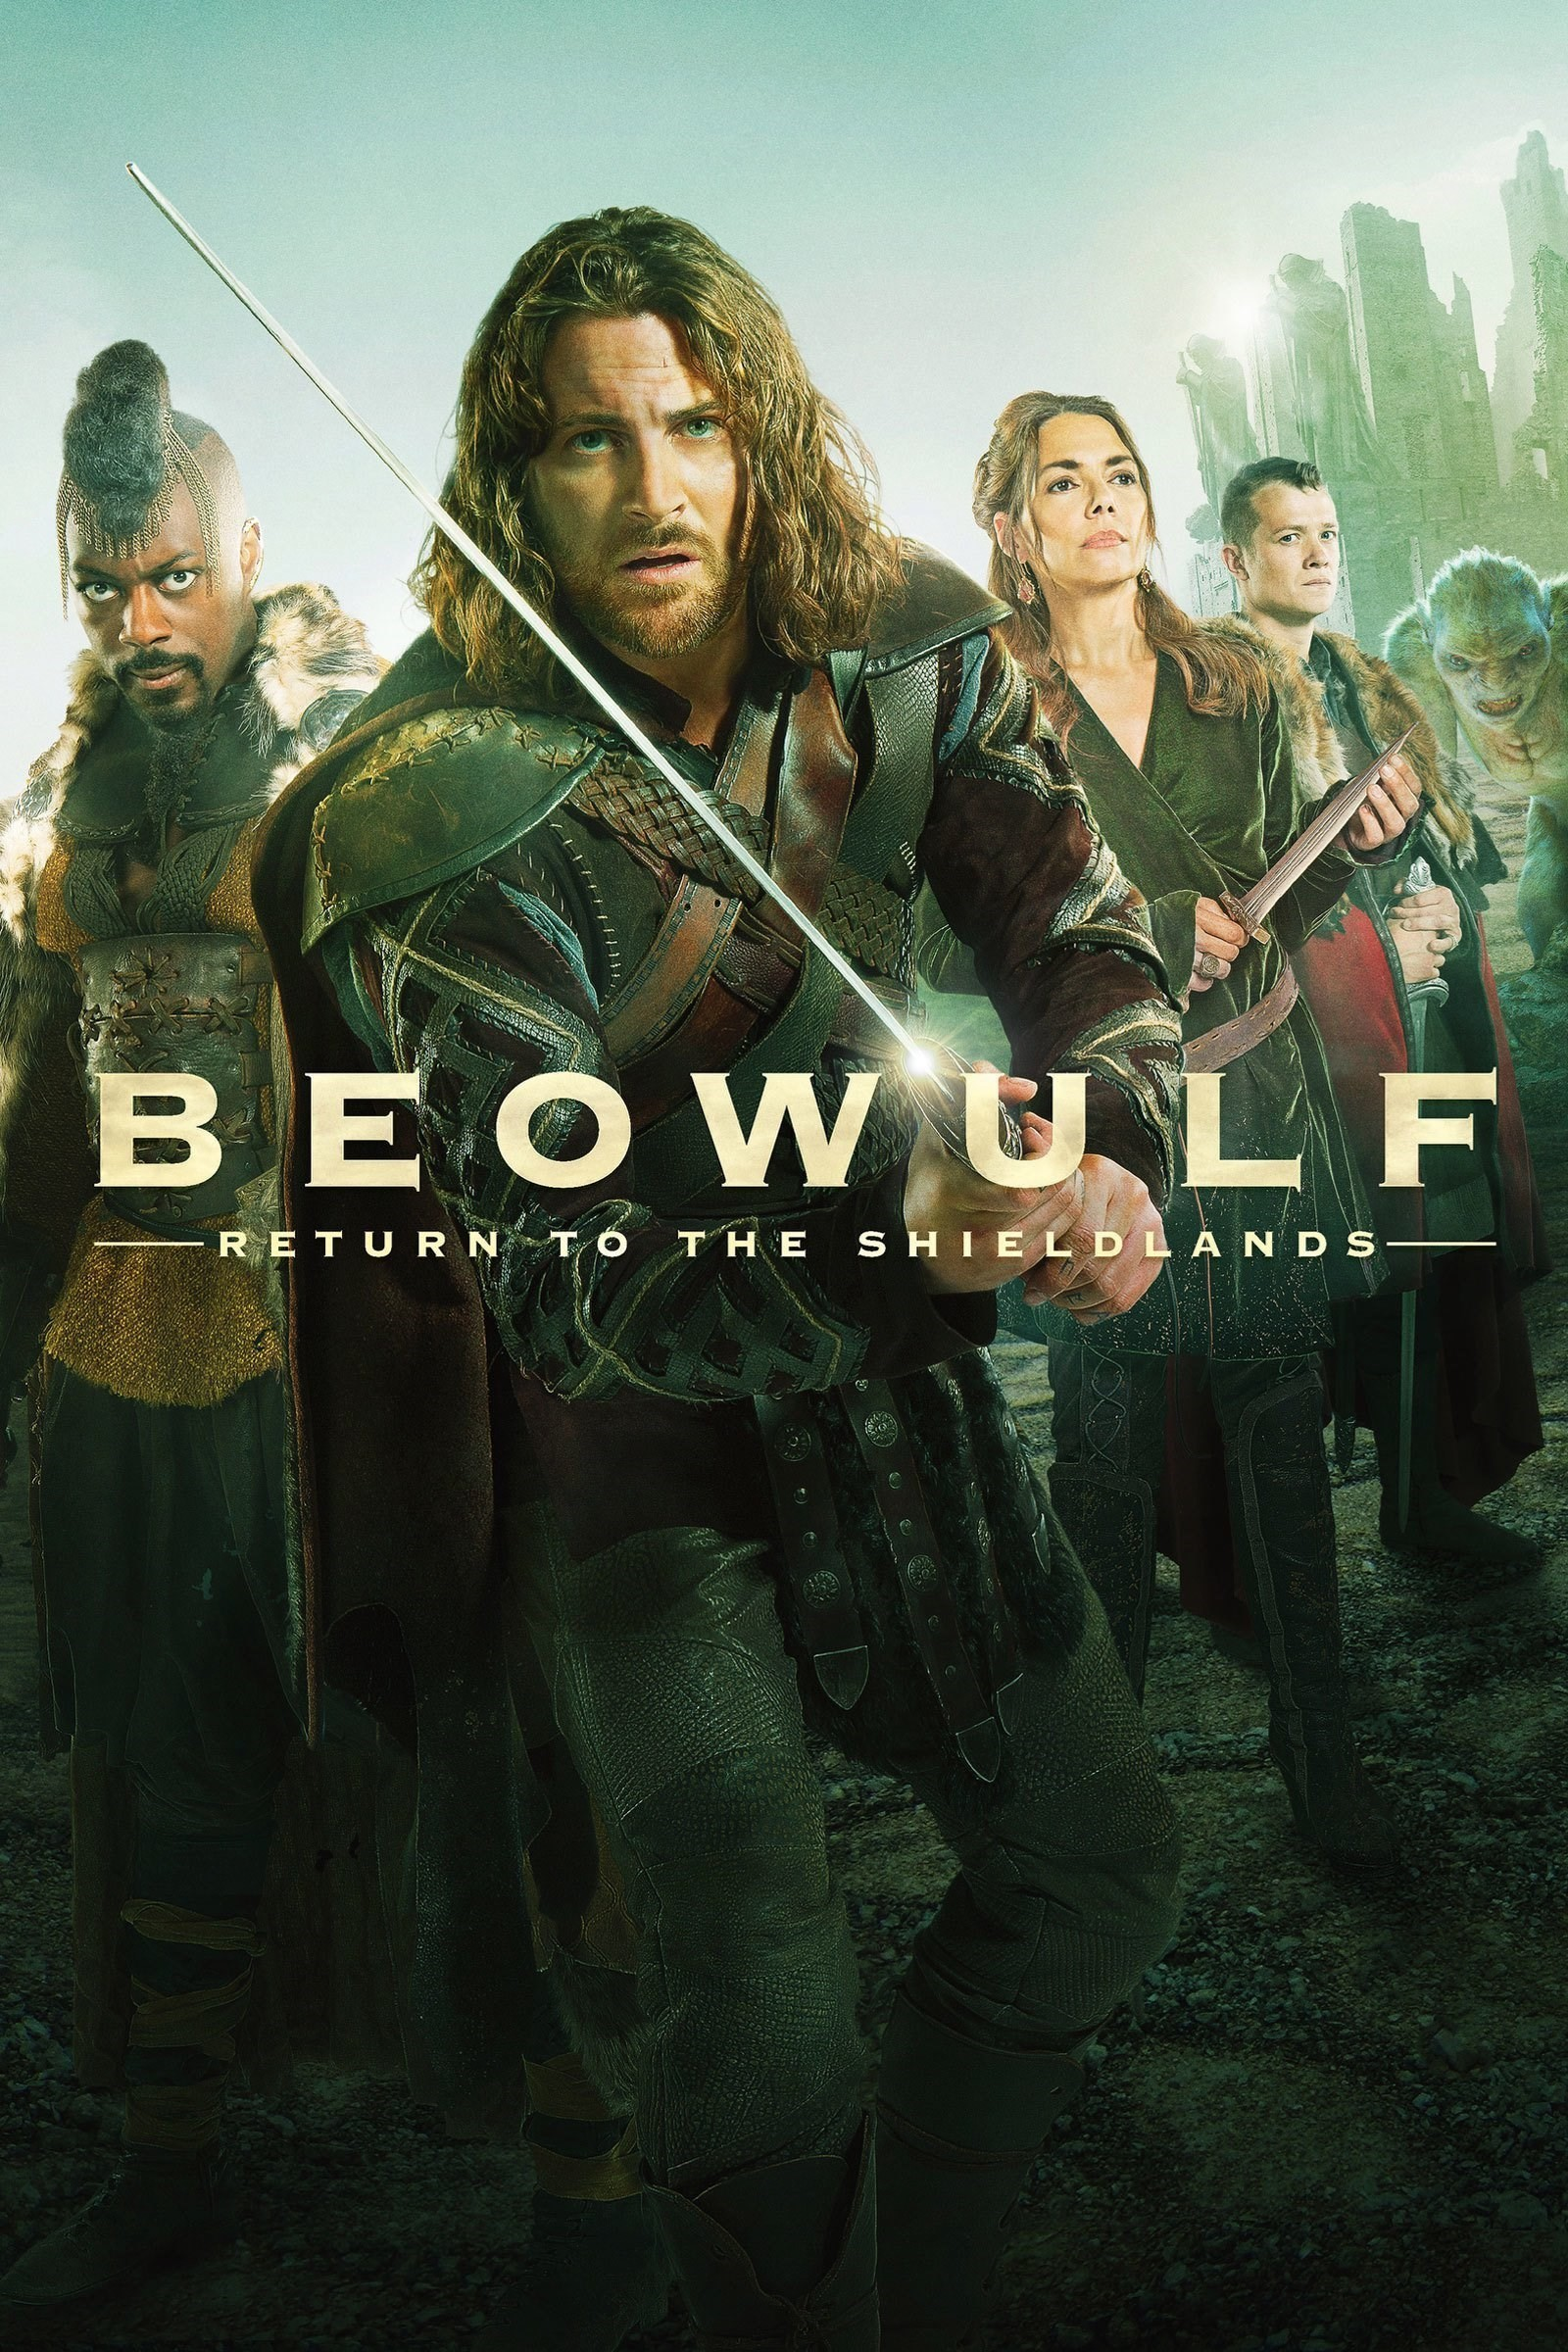 Beowulf: Return to the Shieldlands 7. Bölüm 720p HD-TV TR Altyazılı İndir İzle